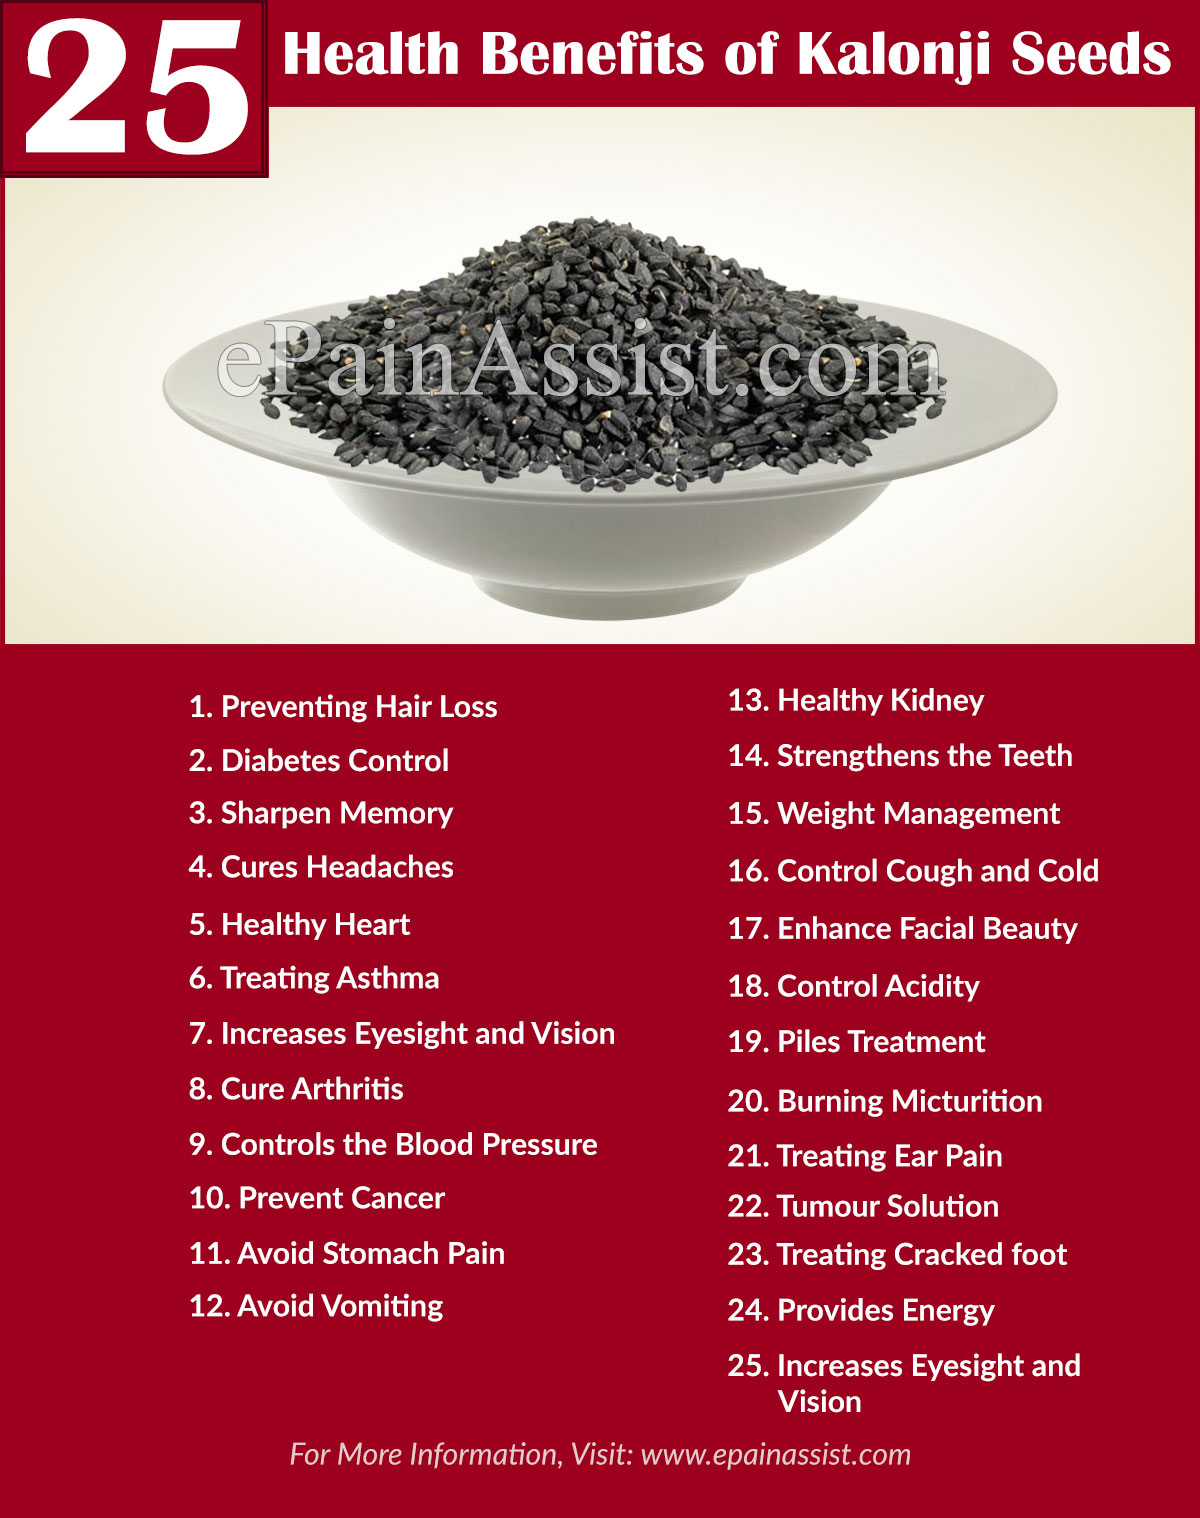 Health Benefits of Kalonji Seeds